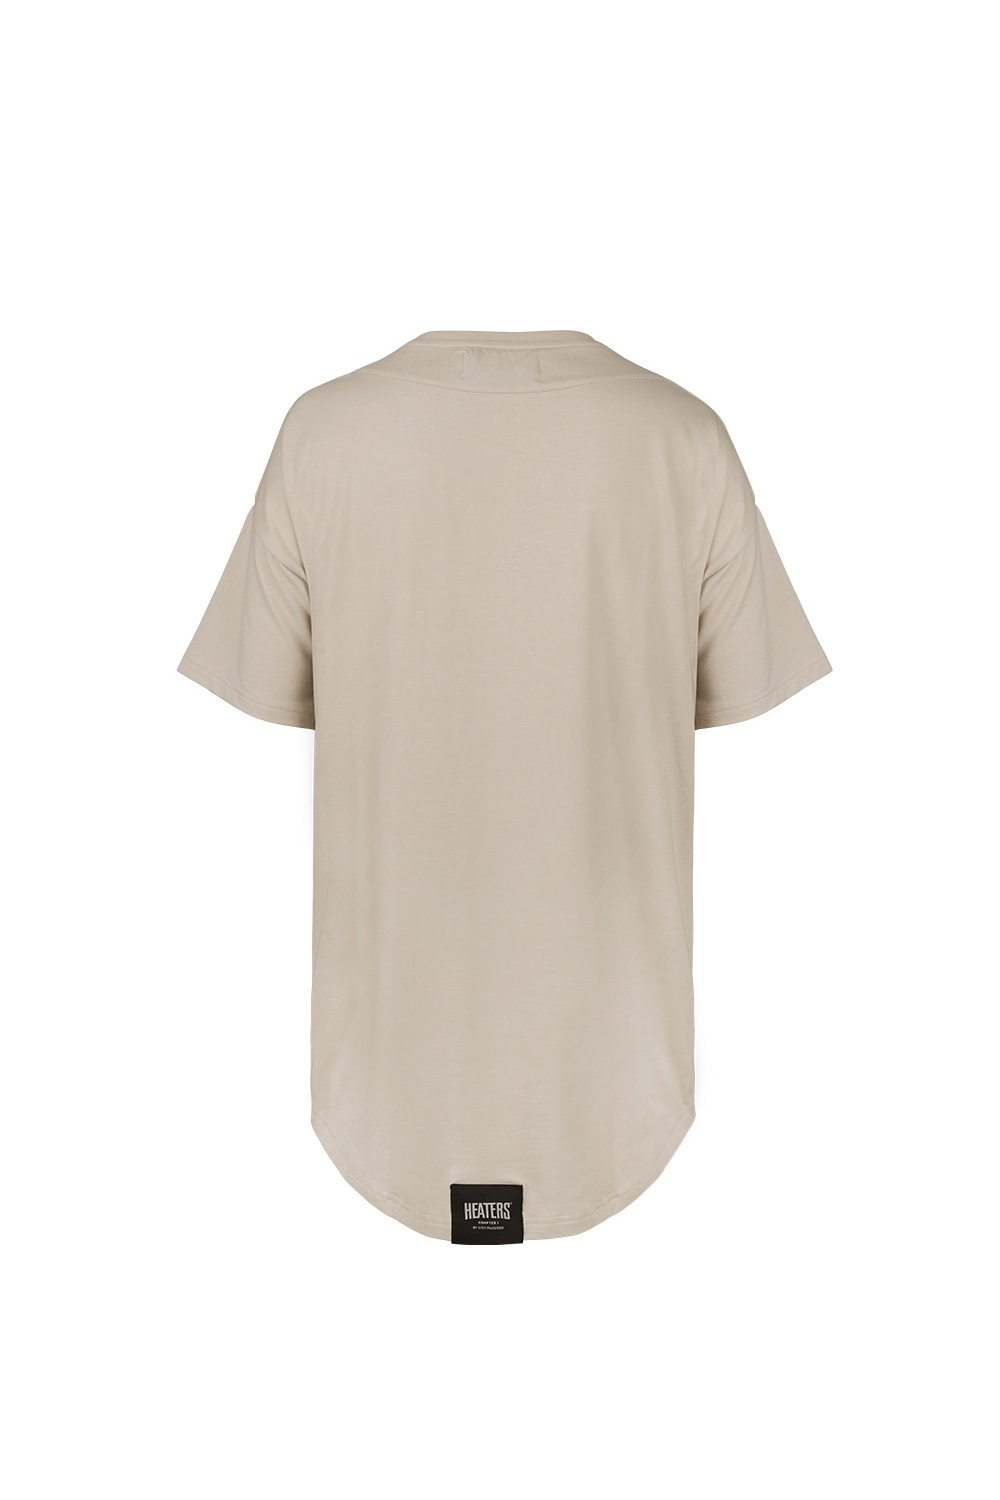 OVERSIZED HEAVY TEE LIGHT TAUPE